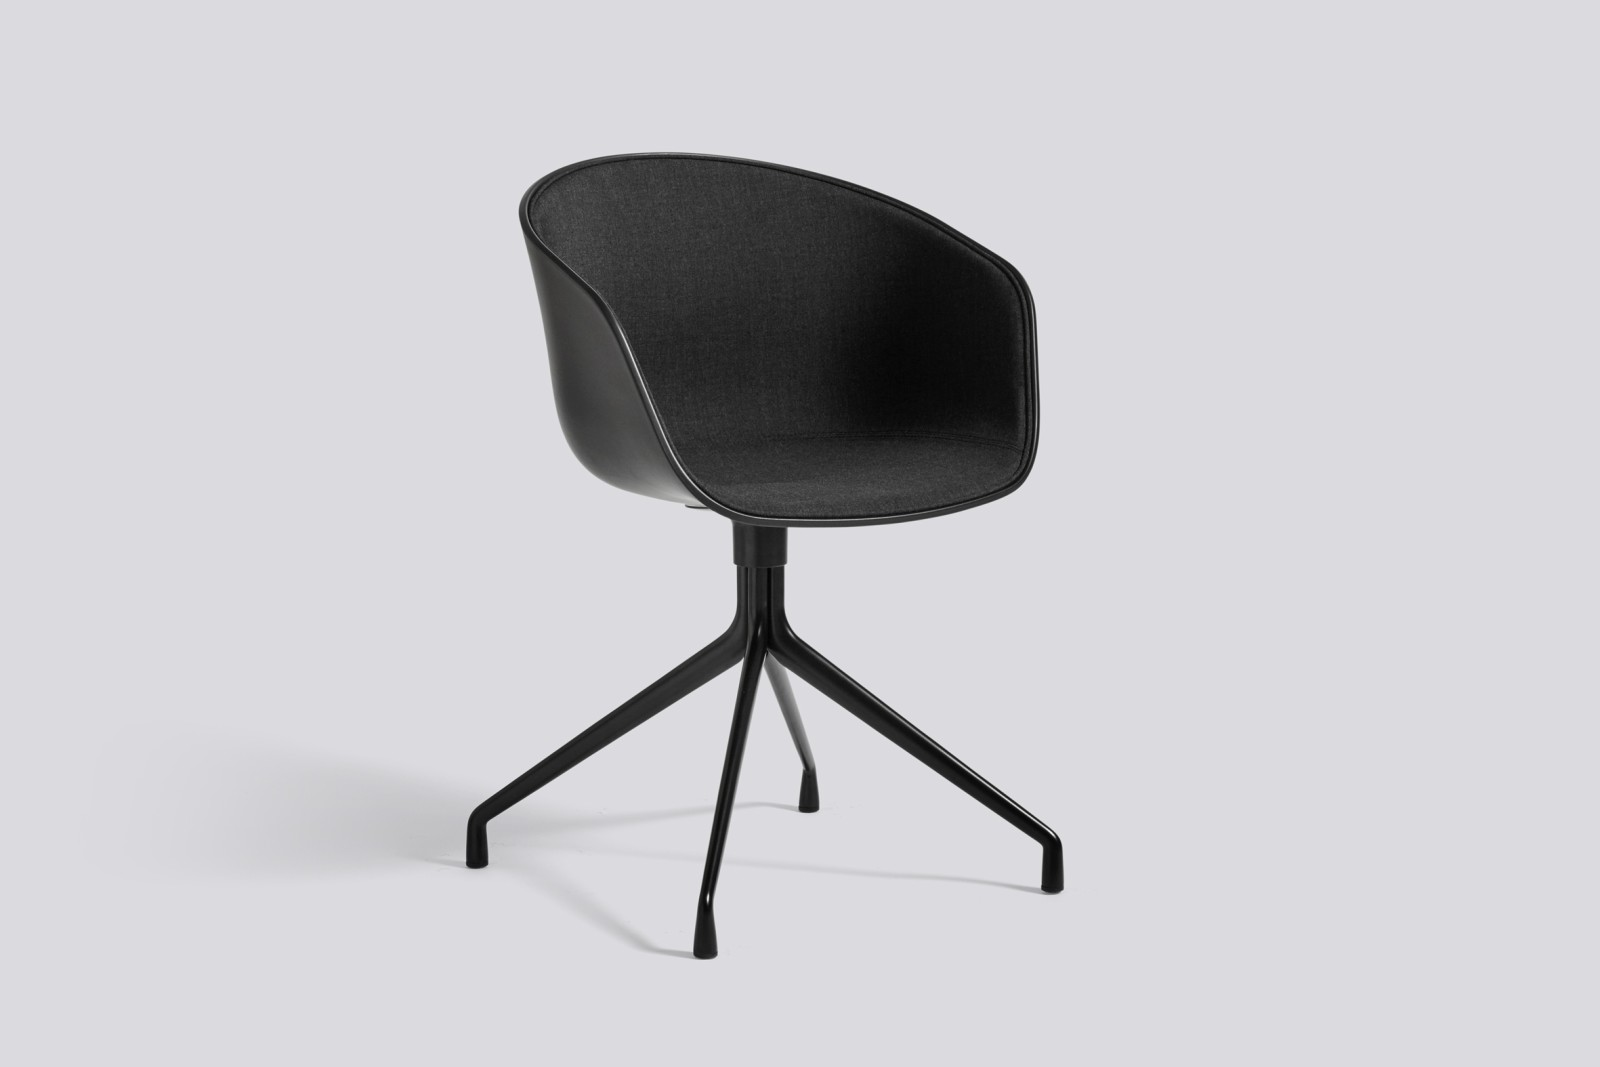 About A Chair AAC20 with front upholstery Surface by Hay 120, Black, White Powder Coated Steel